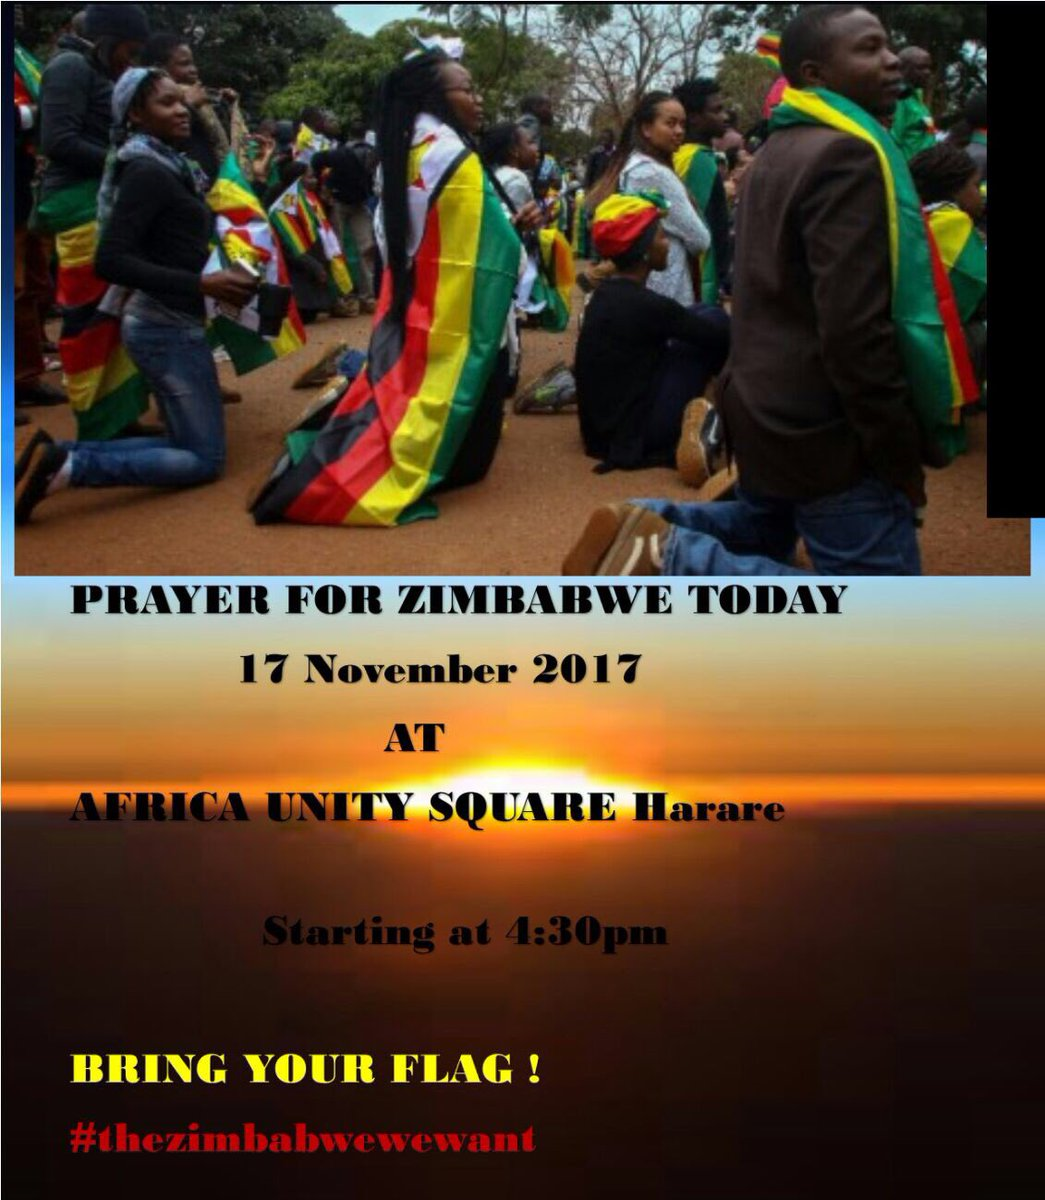 Zimbabweans Pray for Peace Amidst Uncertainty